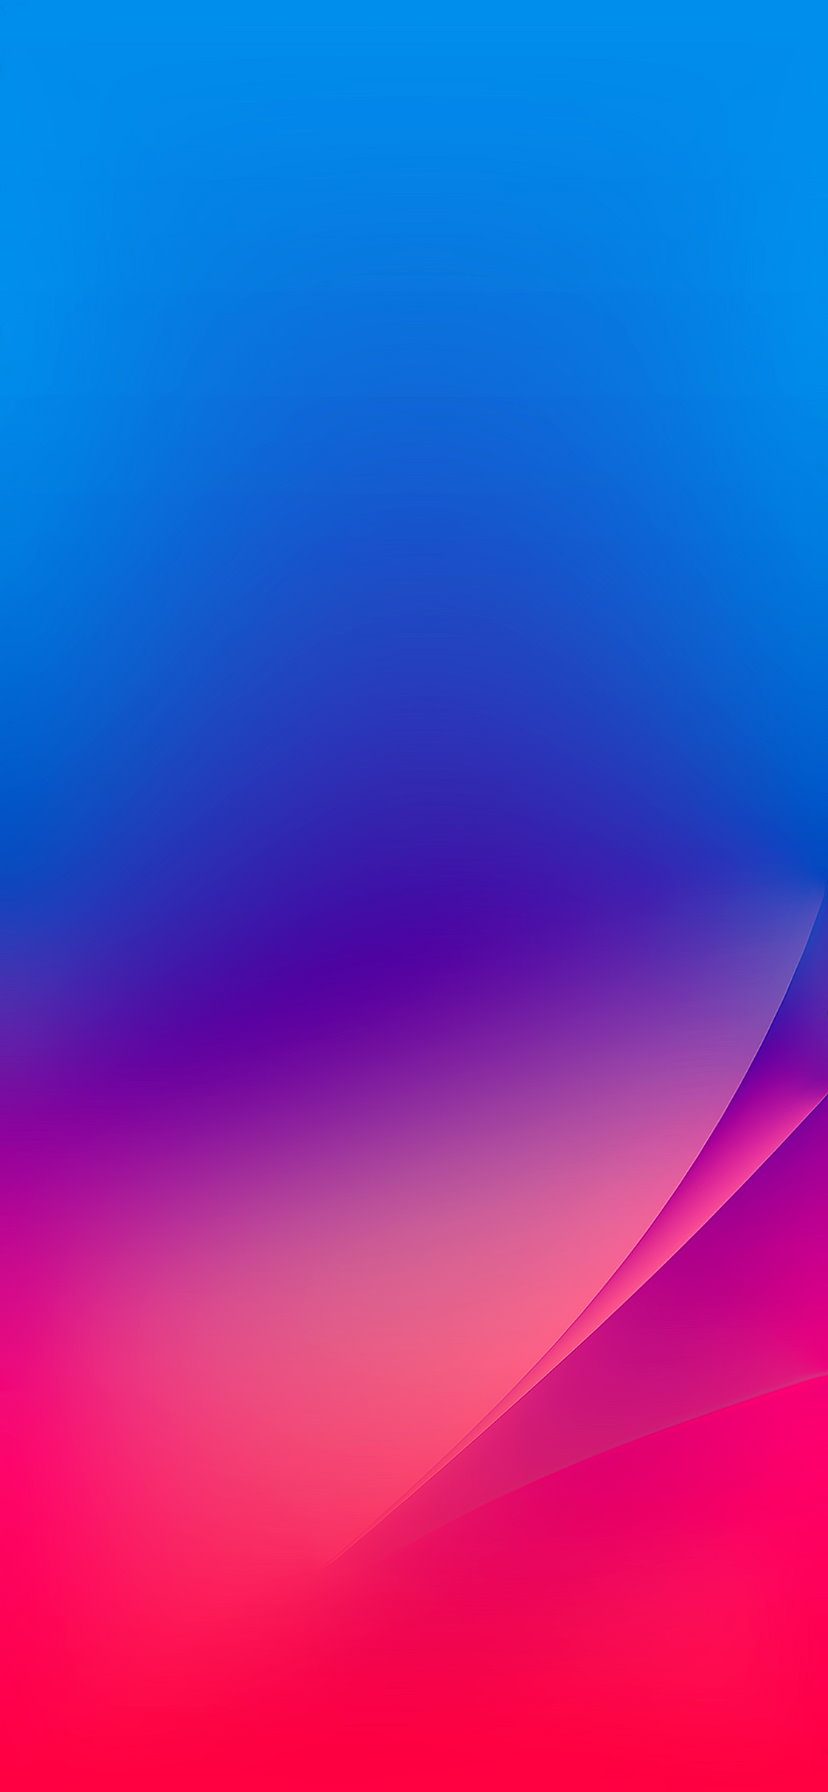 Apple iPhone 8 Plus Wallpapers HD | Backgrounds cool